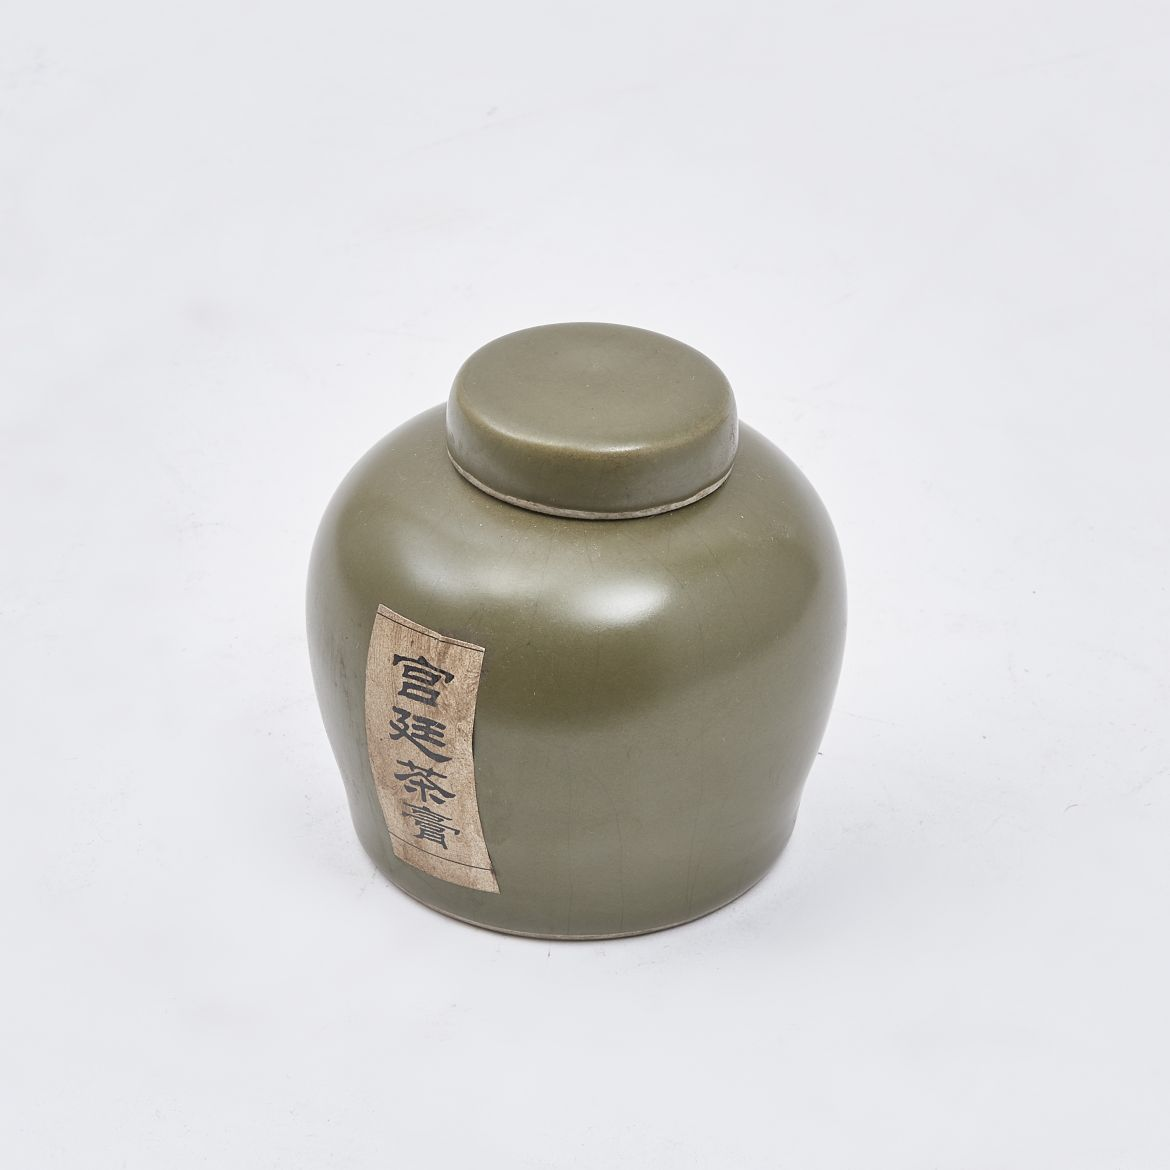 Chinese Tea Dust Glaze Spice Jar And Cover